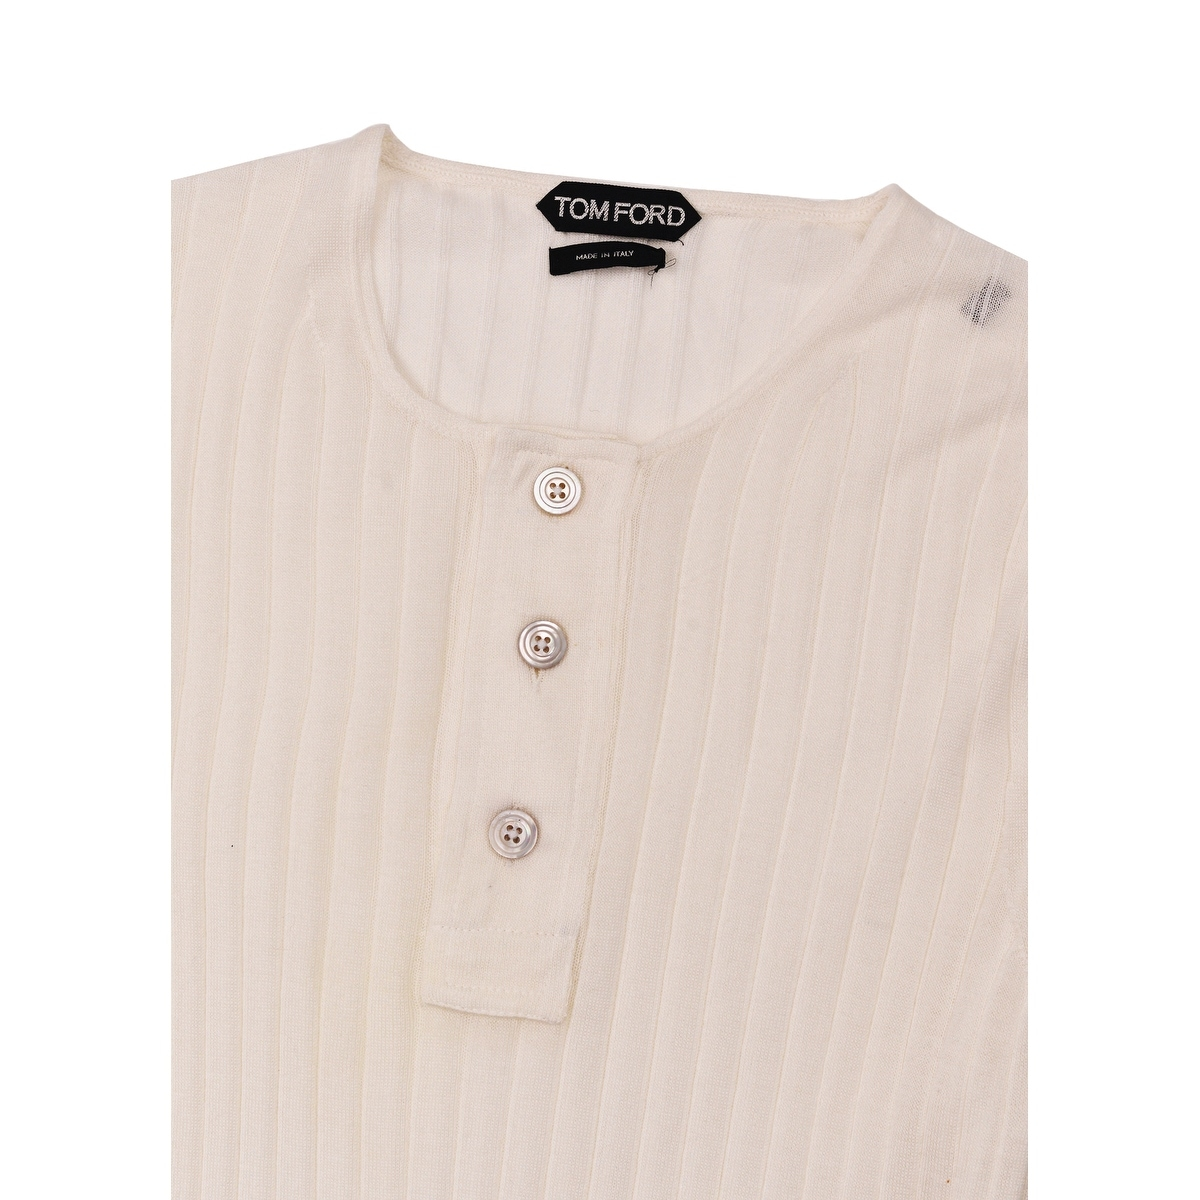 b68d7c3d Shop Tom Ford Mens Ivory Cashmere Silk Henley Ribbed Button Sweater - M -  Free Shipping Today - Overstock - 26438375